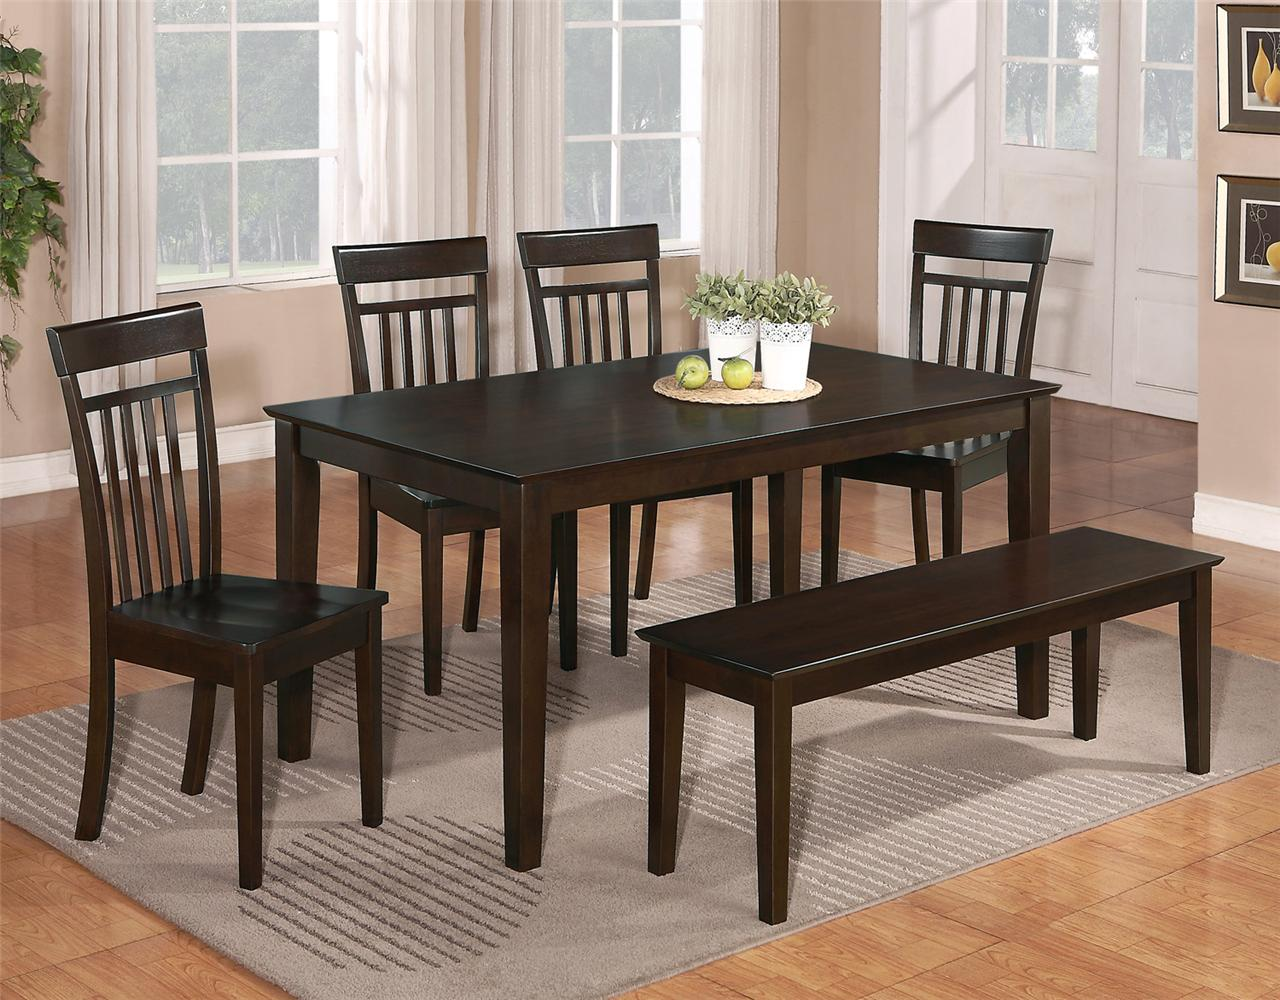 6 pc dinette kitchen dining room set table w 4 wood chair and 1 bench cappuccino ebay - Bench kitchen set ...